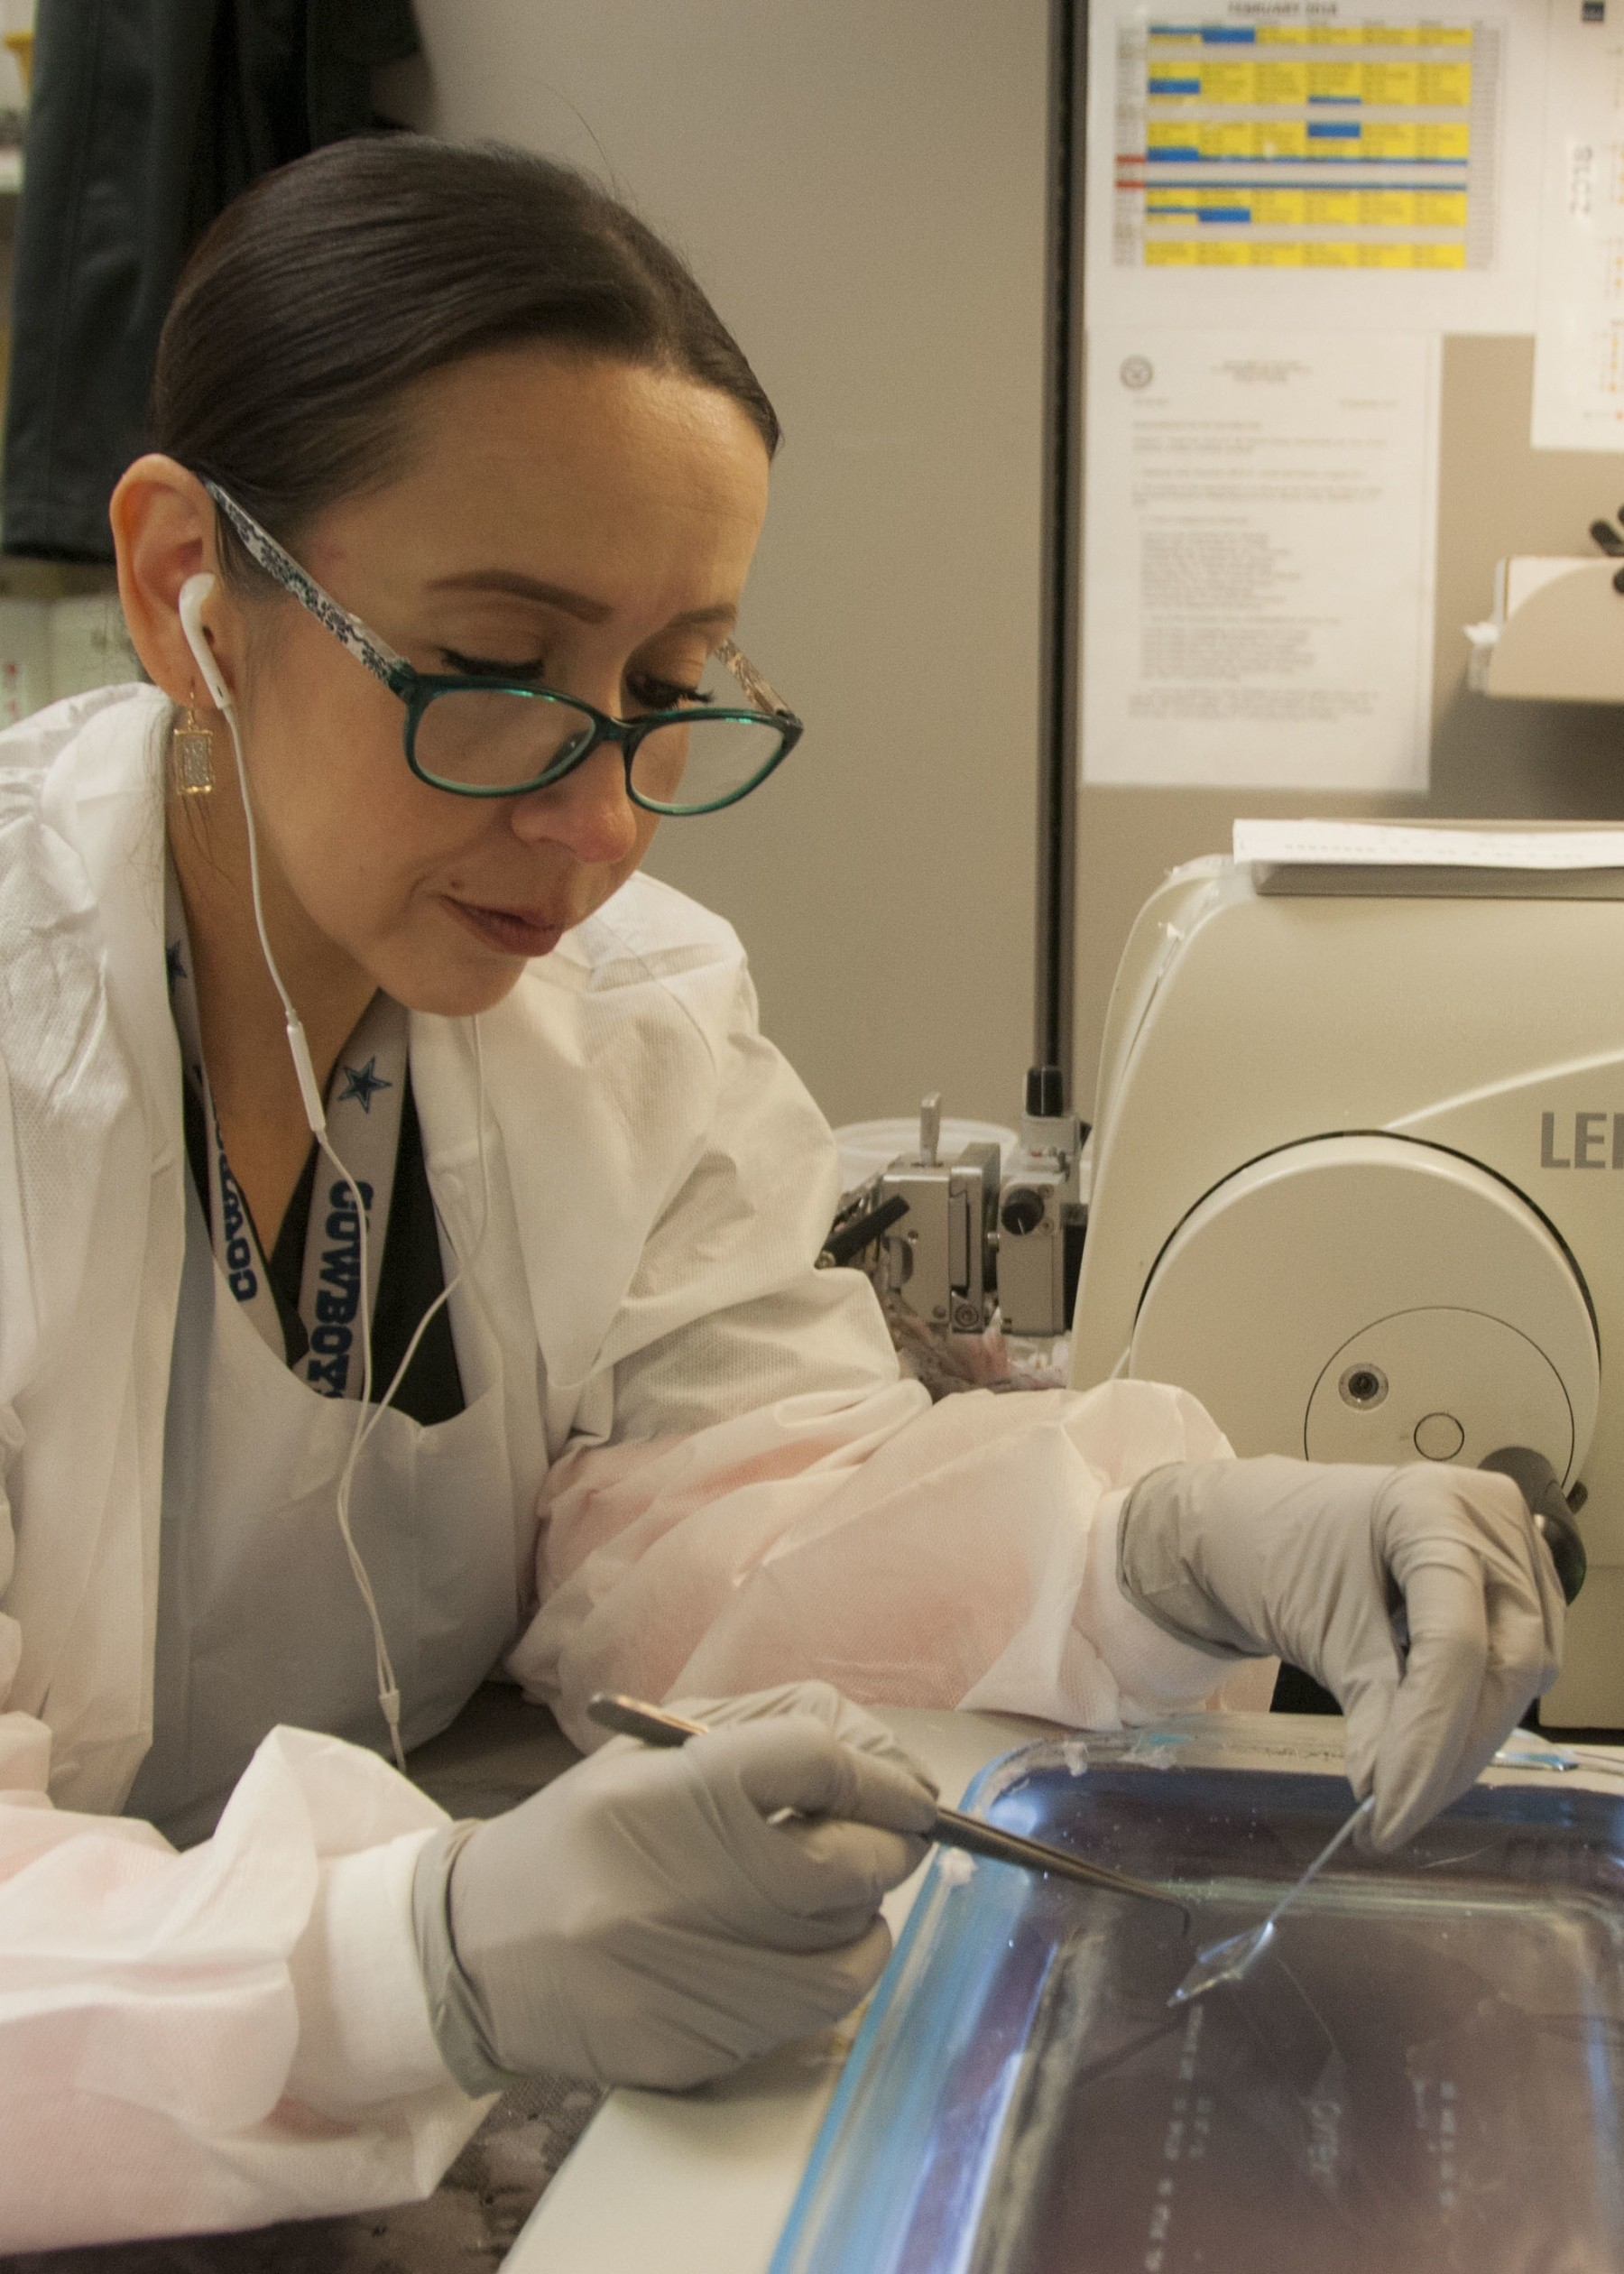 Wbamc Histology Techs Care Beyond The Surface Article The